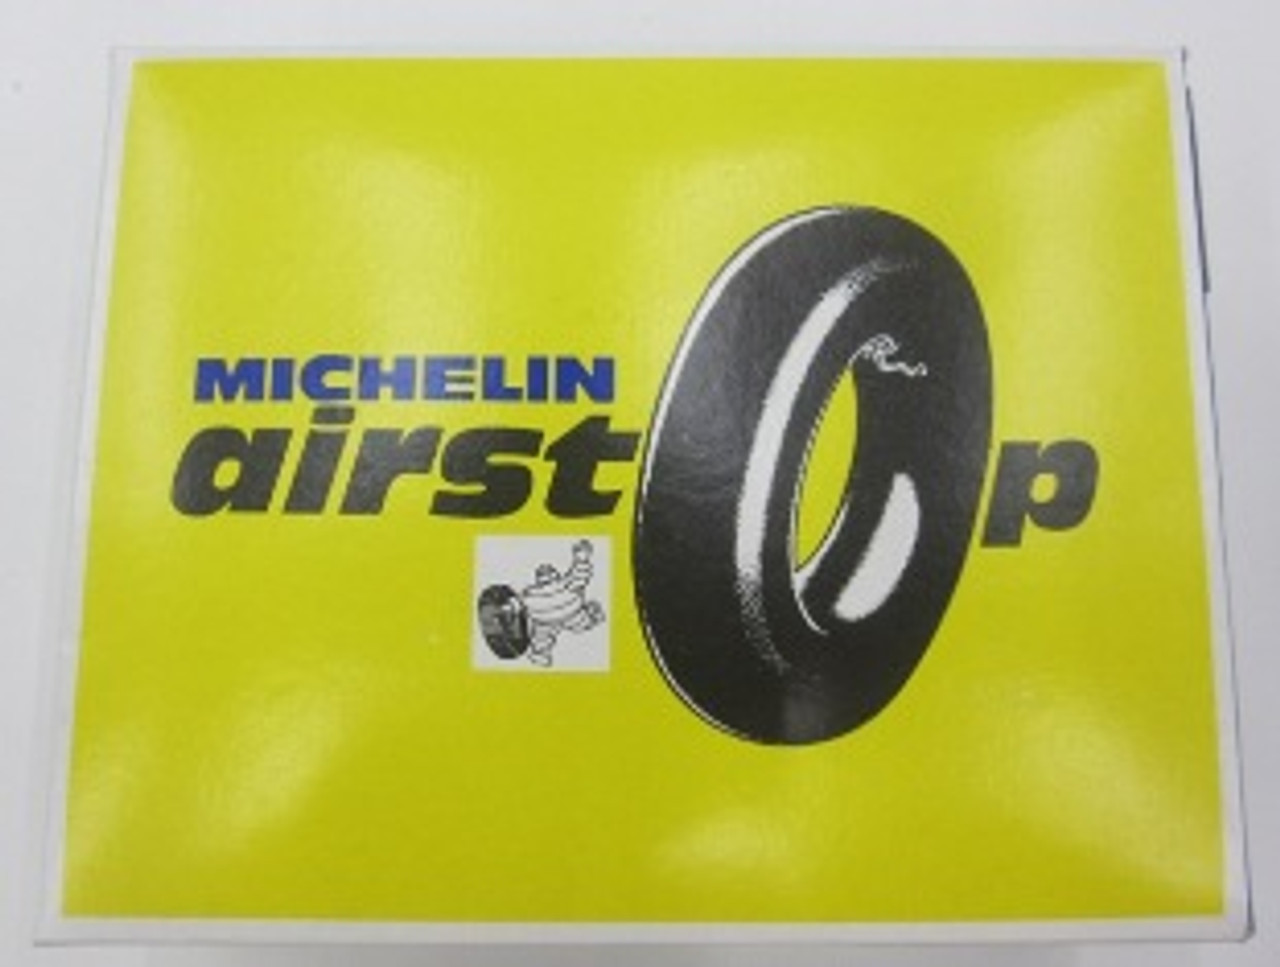 Michelin Airstop 6.00-6 TR-20 Straight Valve Stem Inner Tube